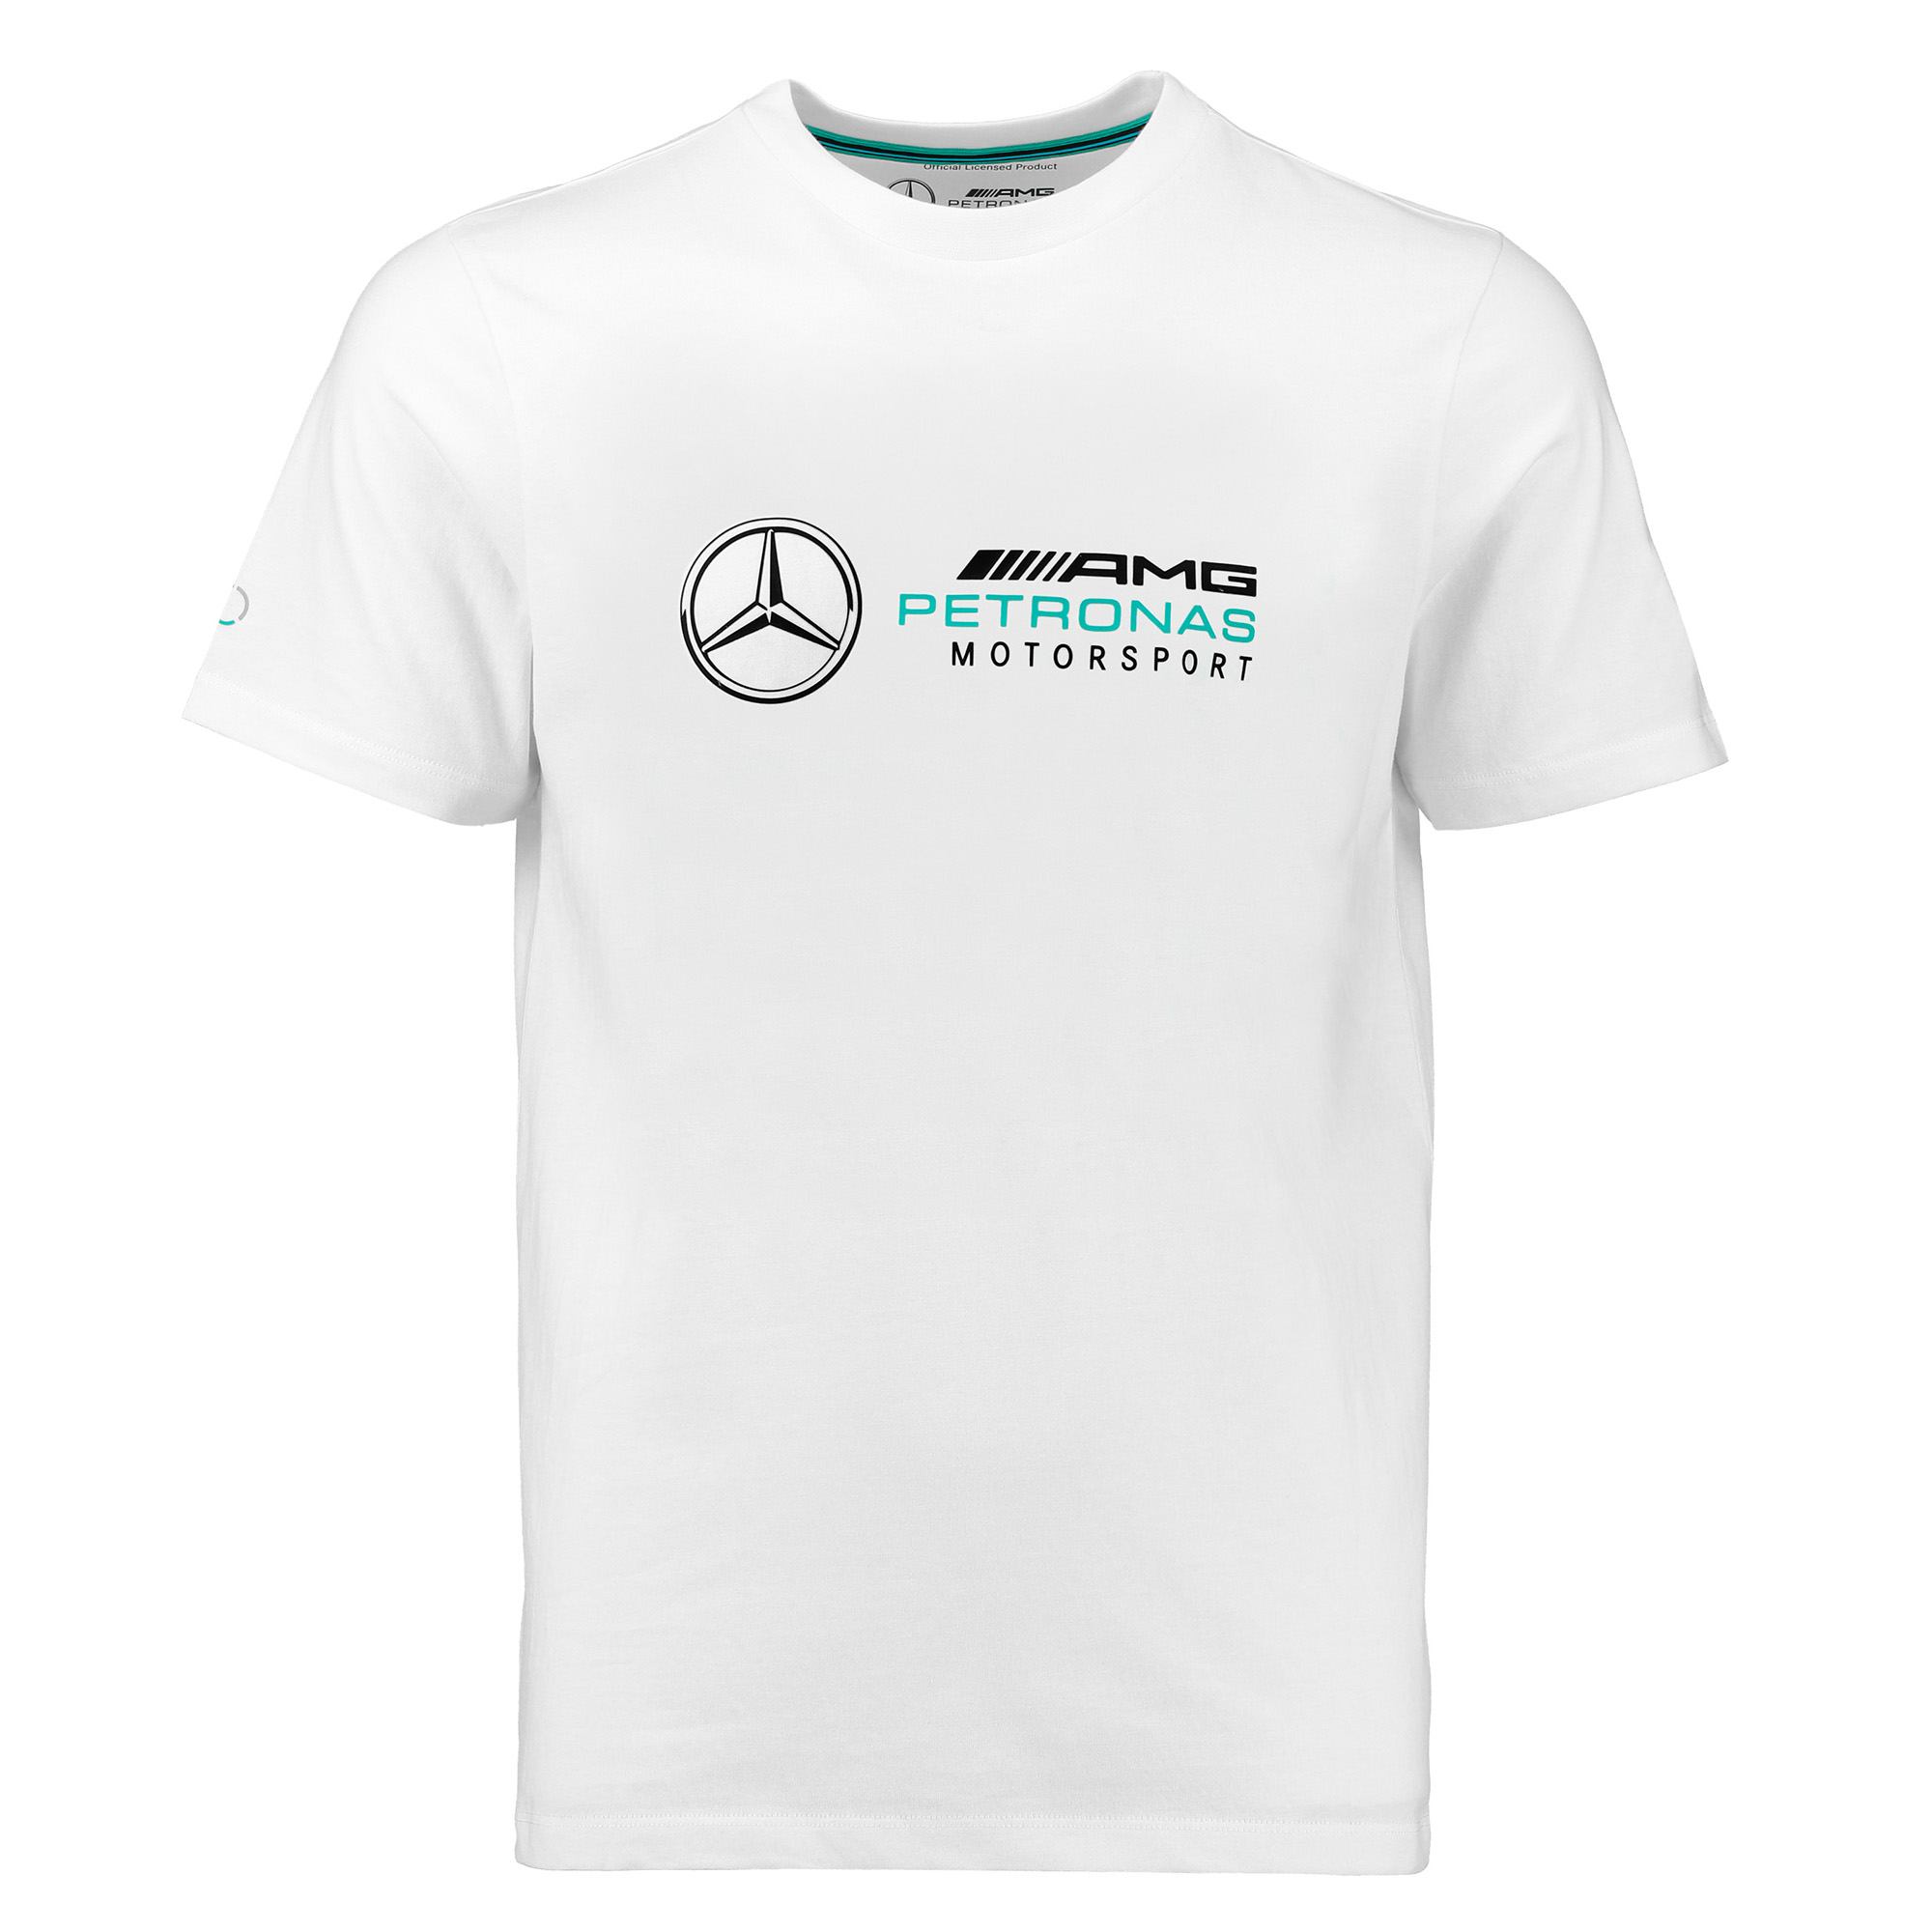 benz chase every ready category second mercedes shirts marathon